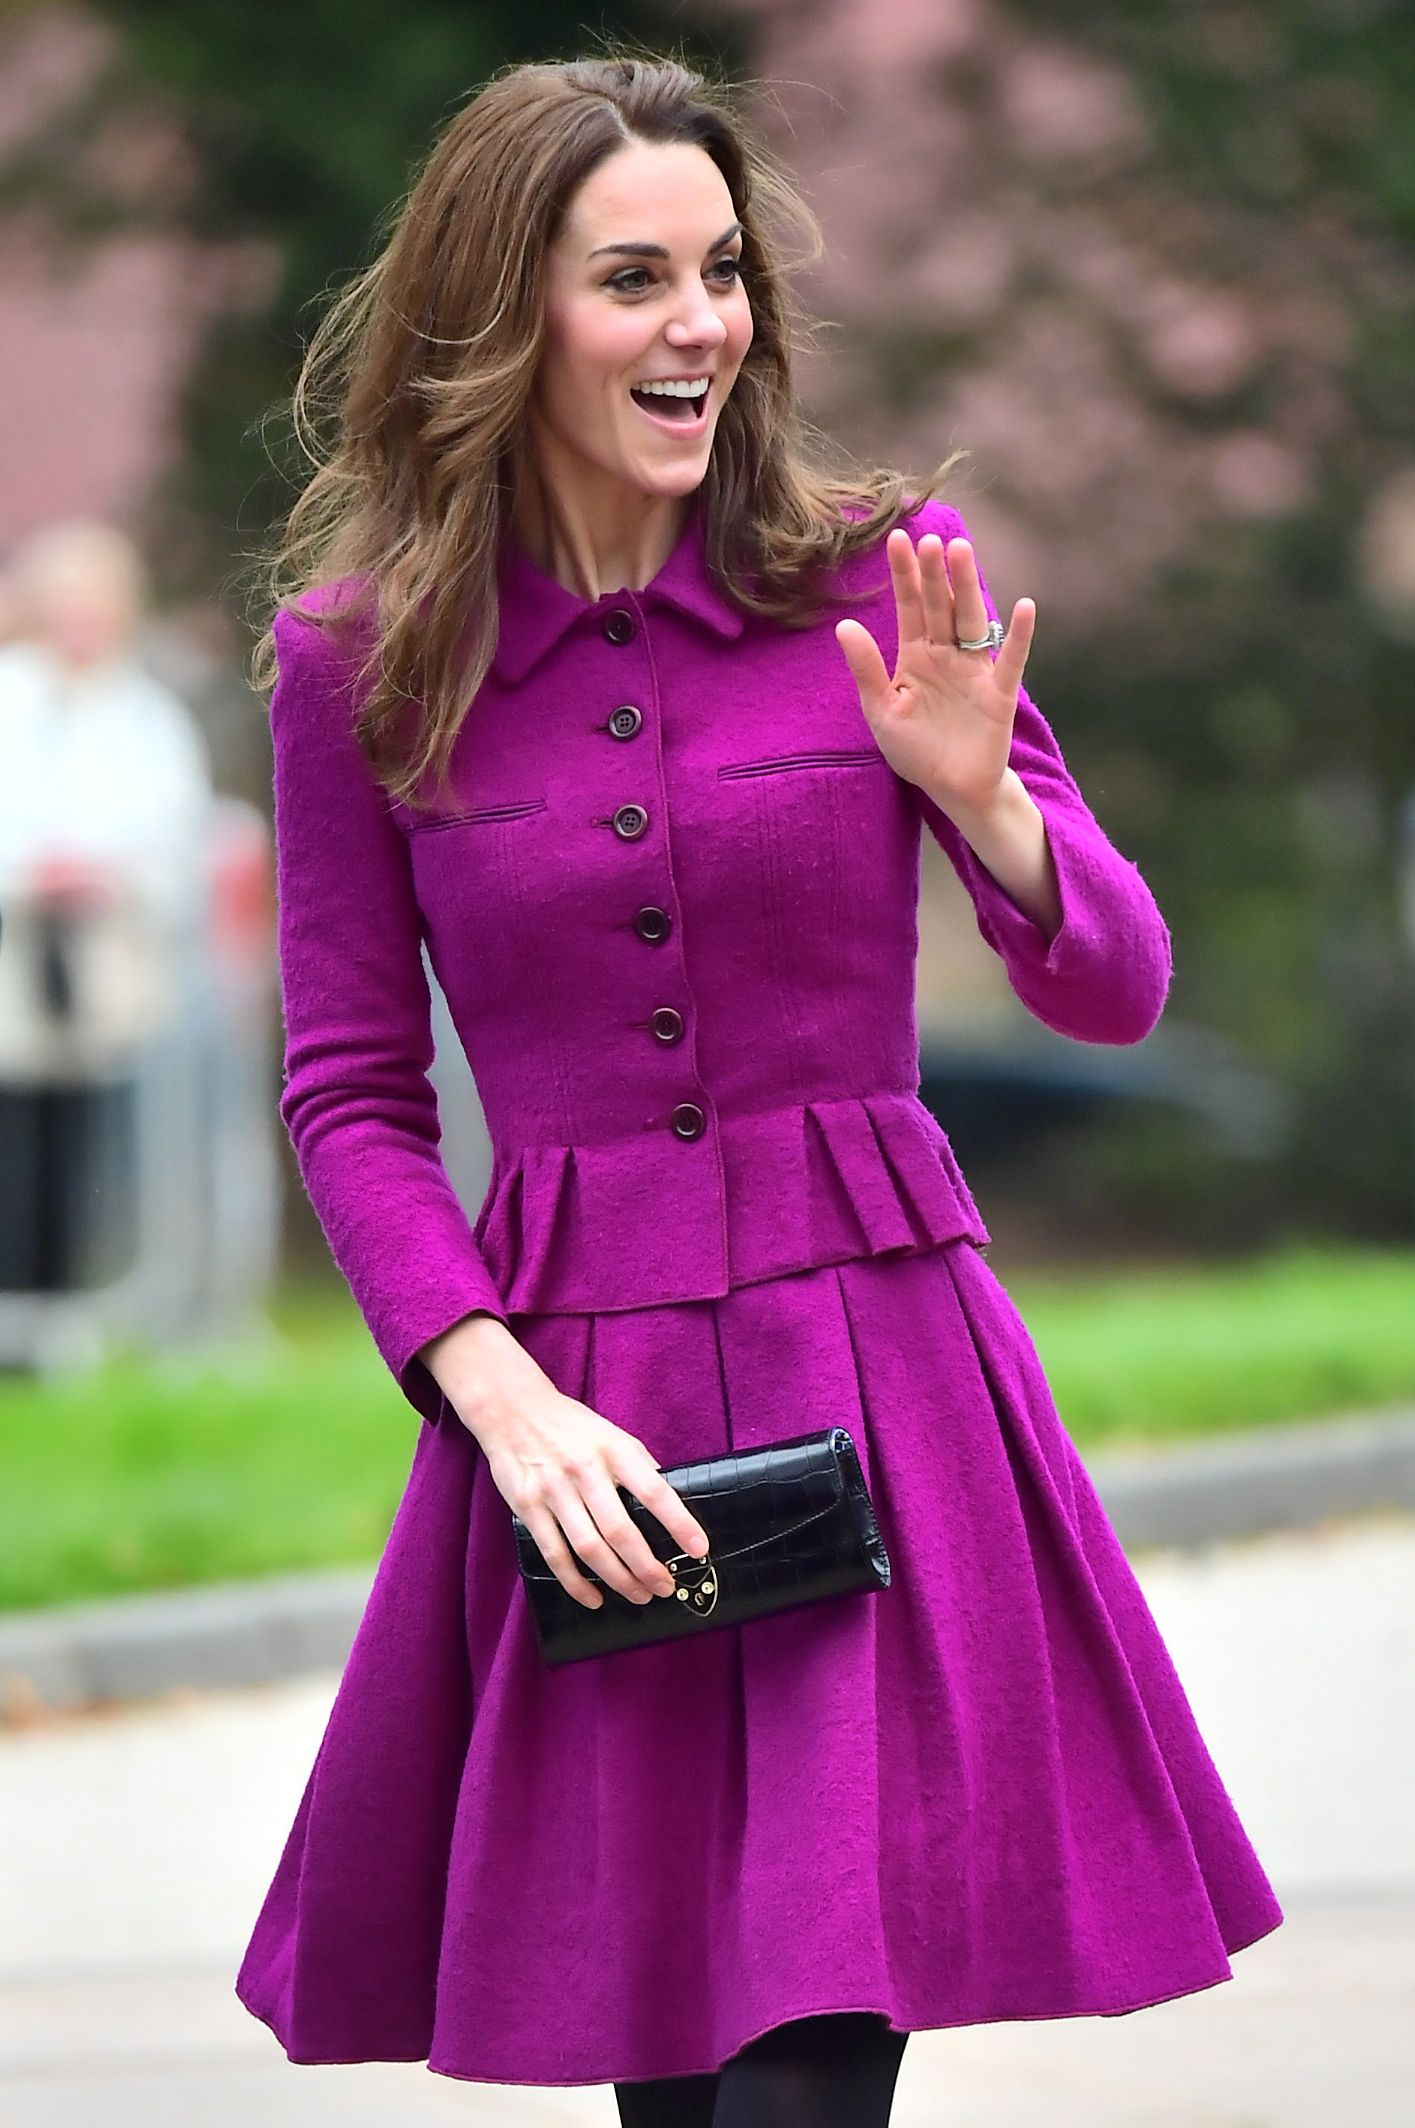 Kate Middleton Revisits One of Her First Royal Patronages In a Beloved Oscar de la Renta Dress